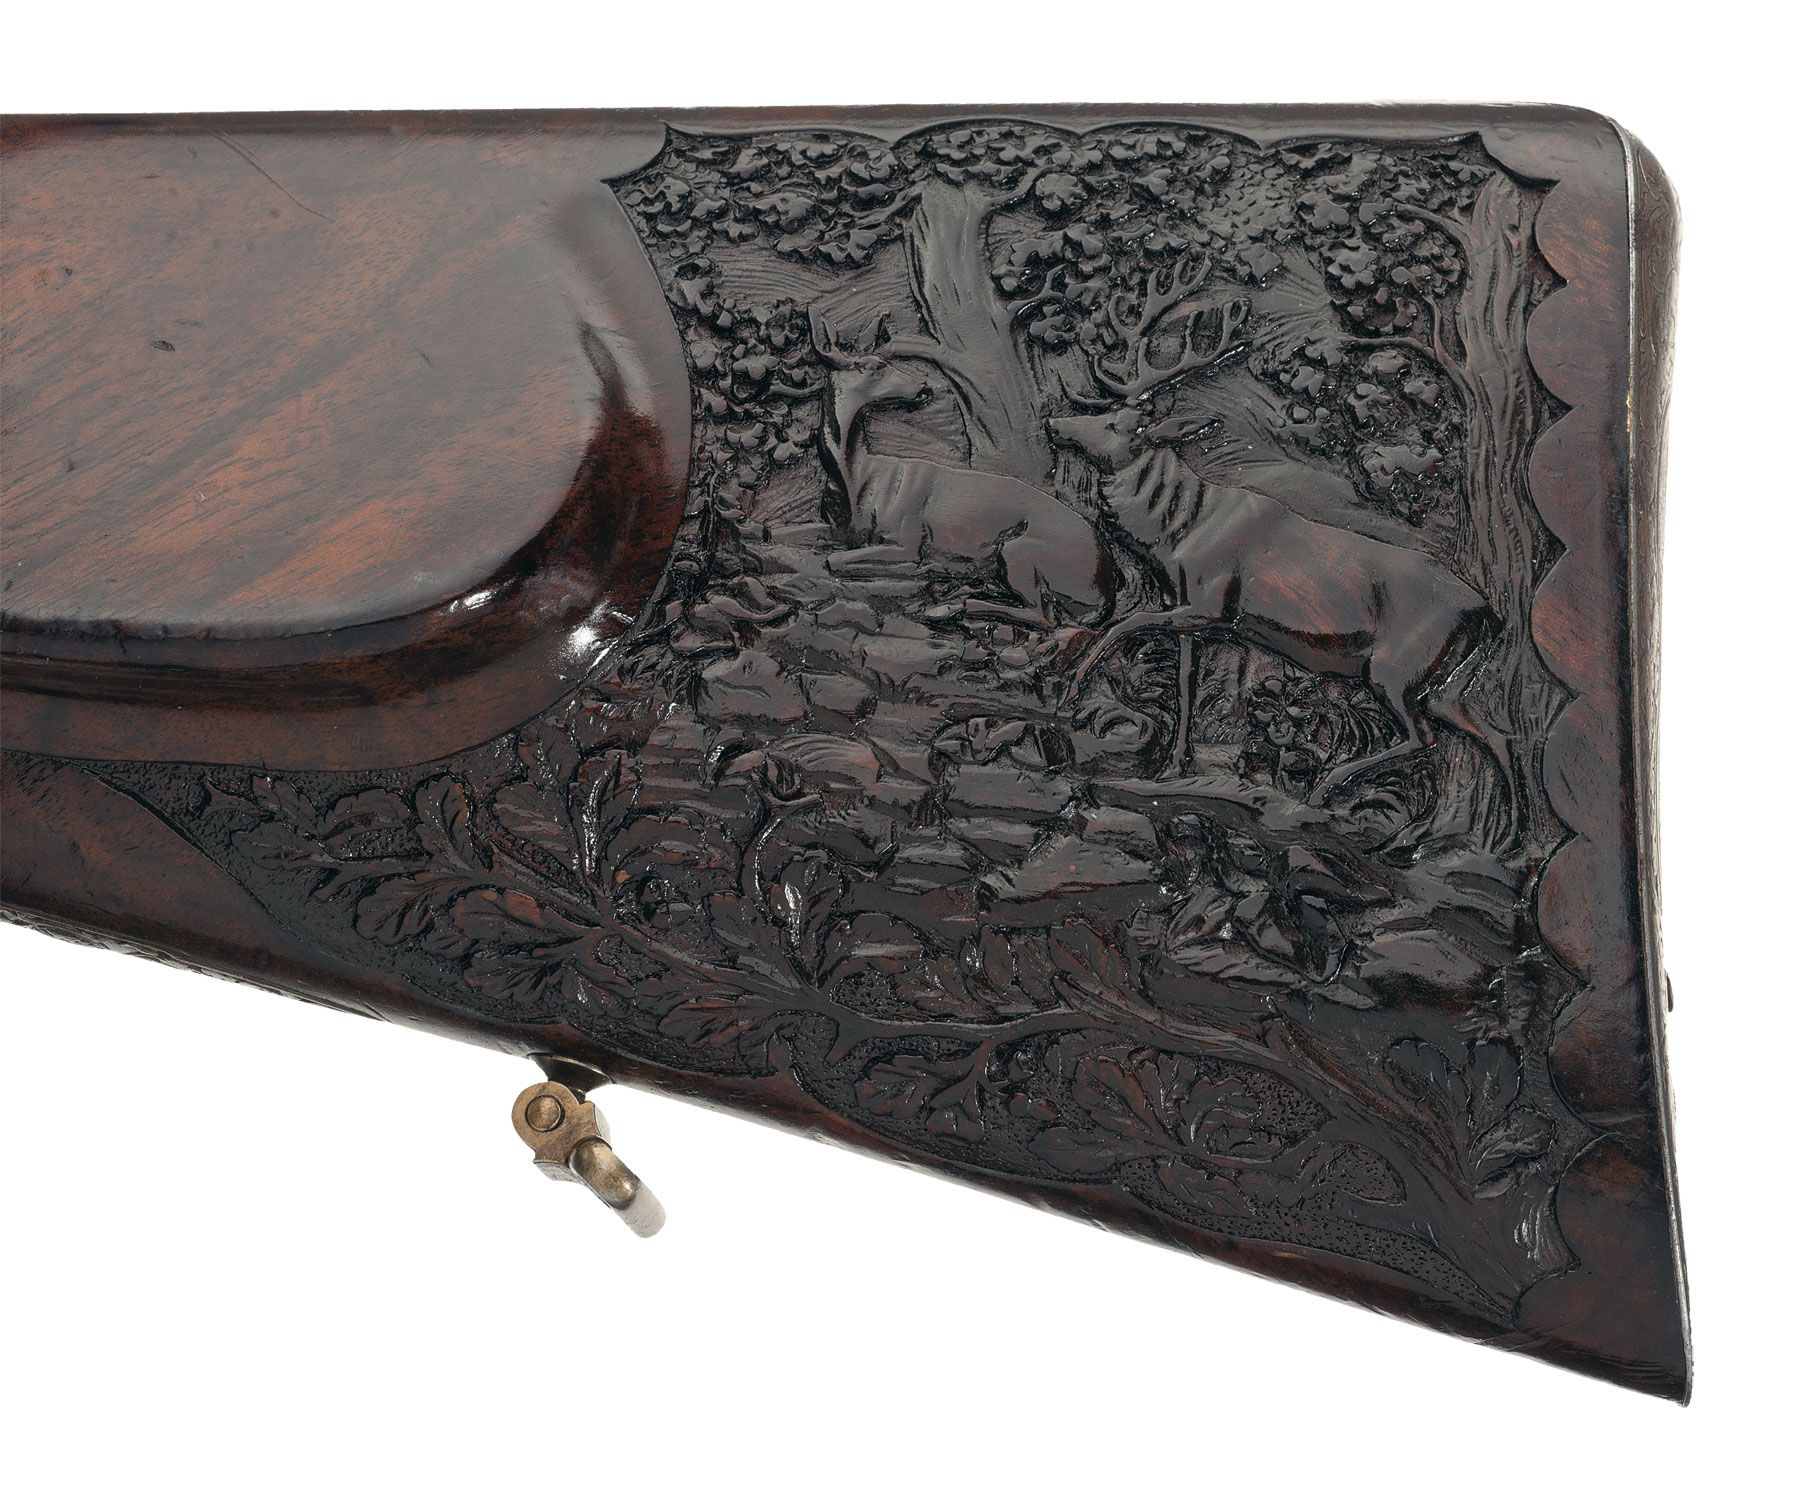 Ornate Deep Relief Engraved Gold Inlaid Barella Double Barrel ...